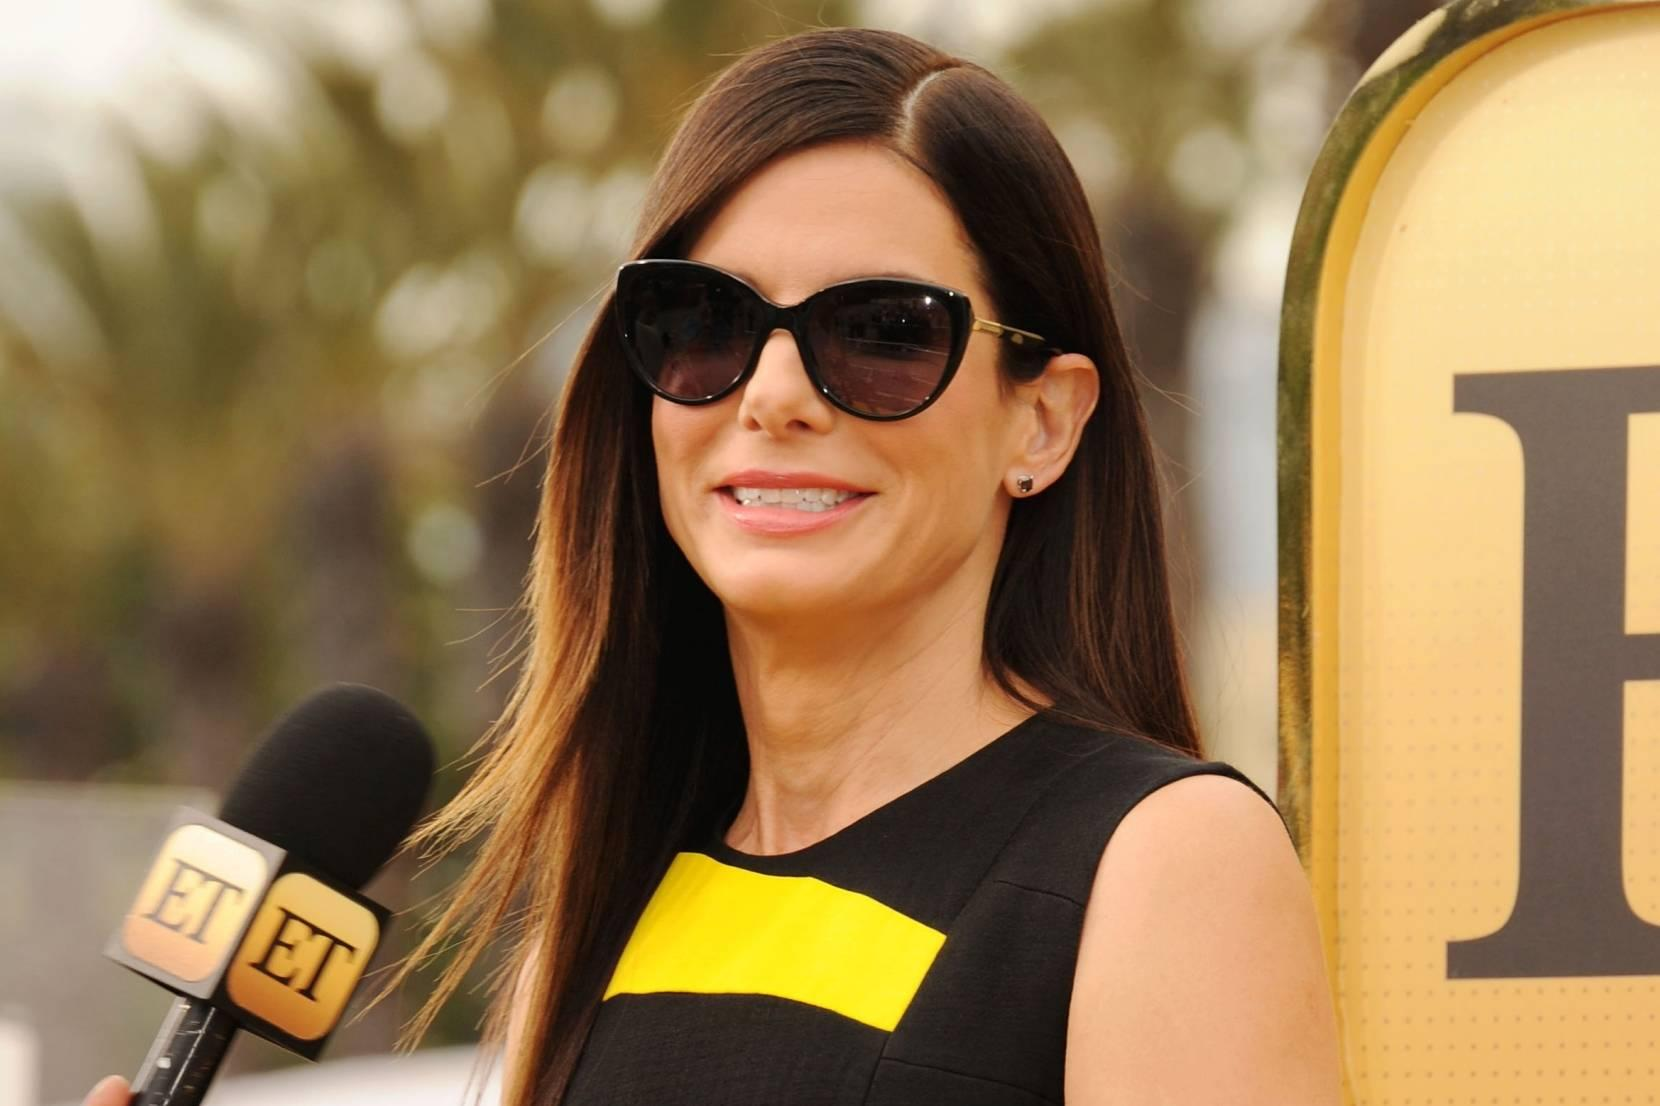 Sandra Bullock - latest news, breaking stories and comment